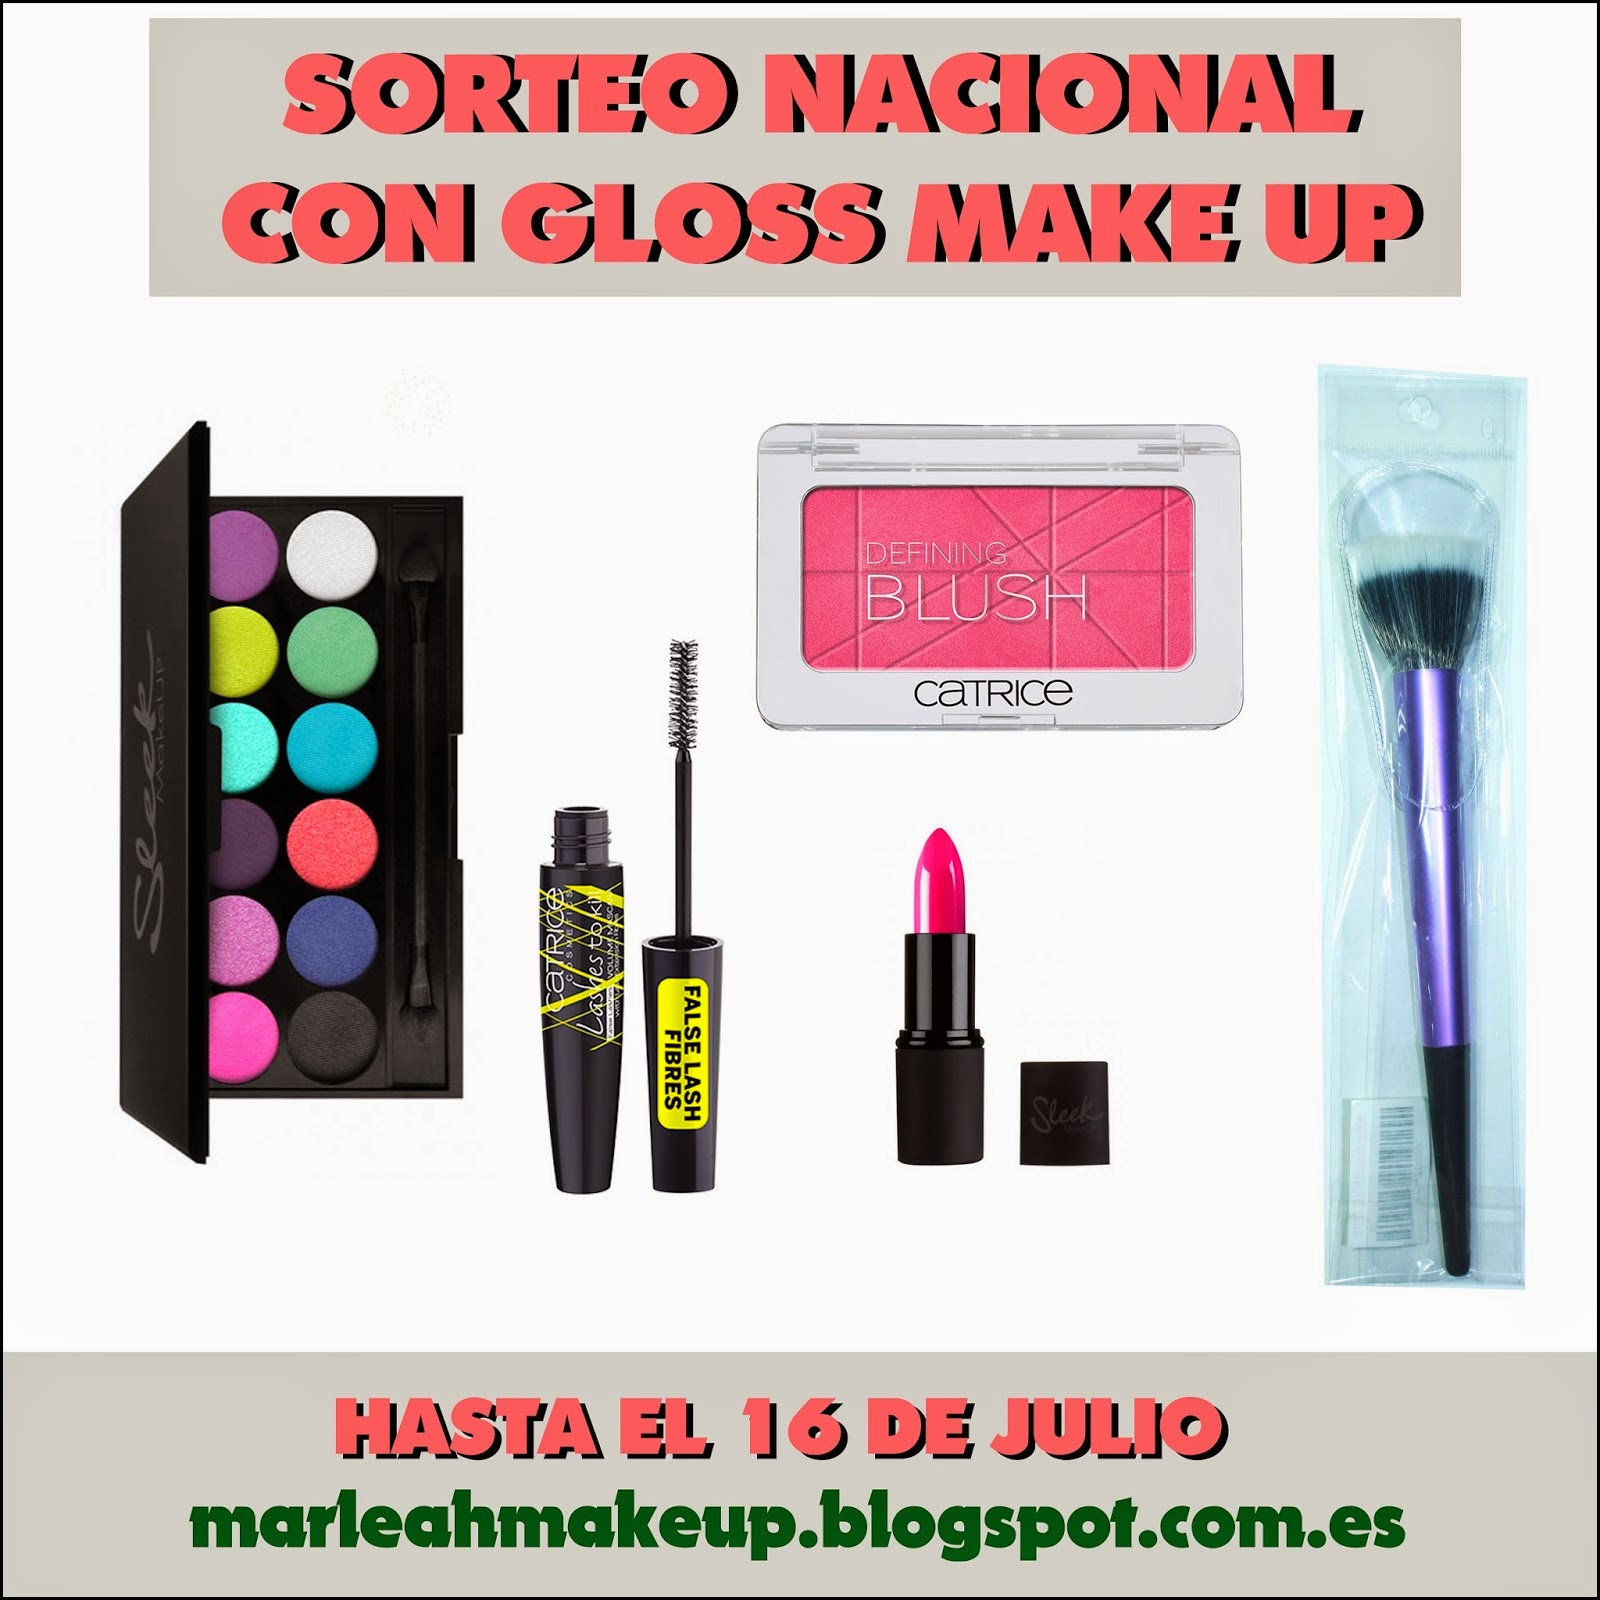 sorteo nacional con gloss make up